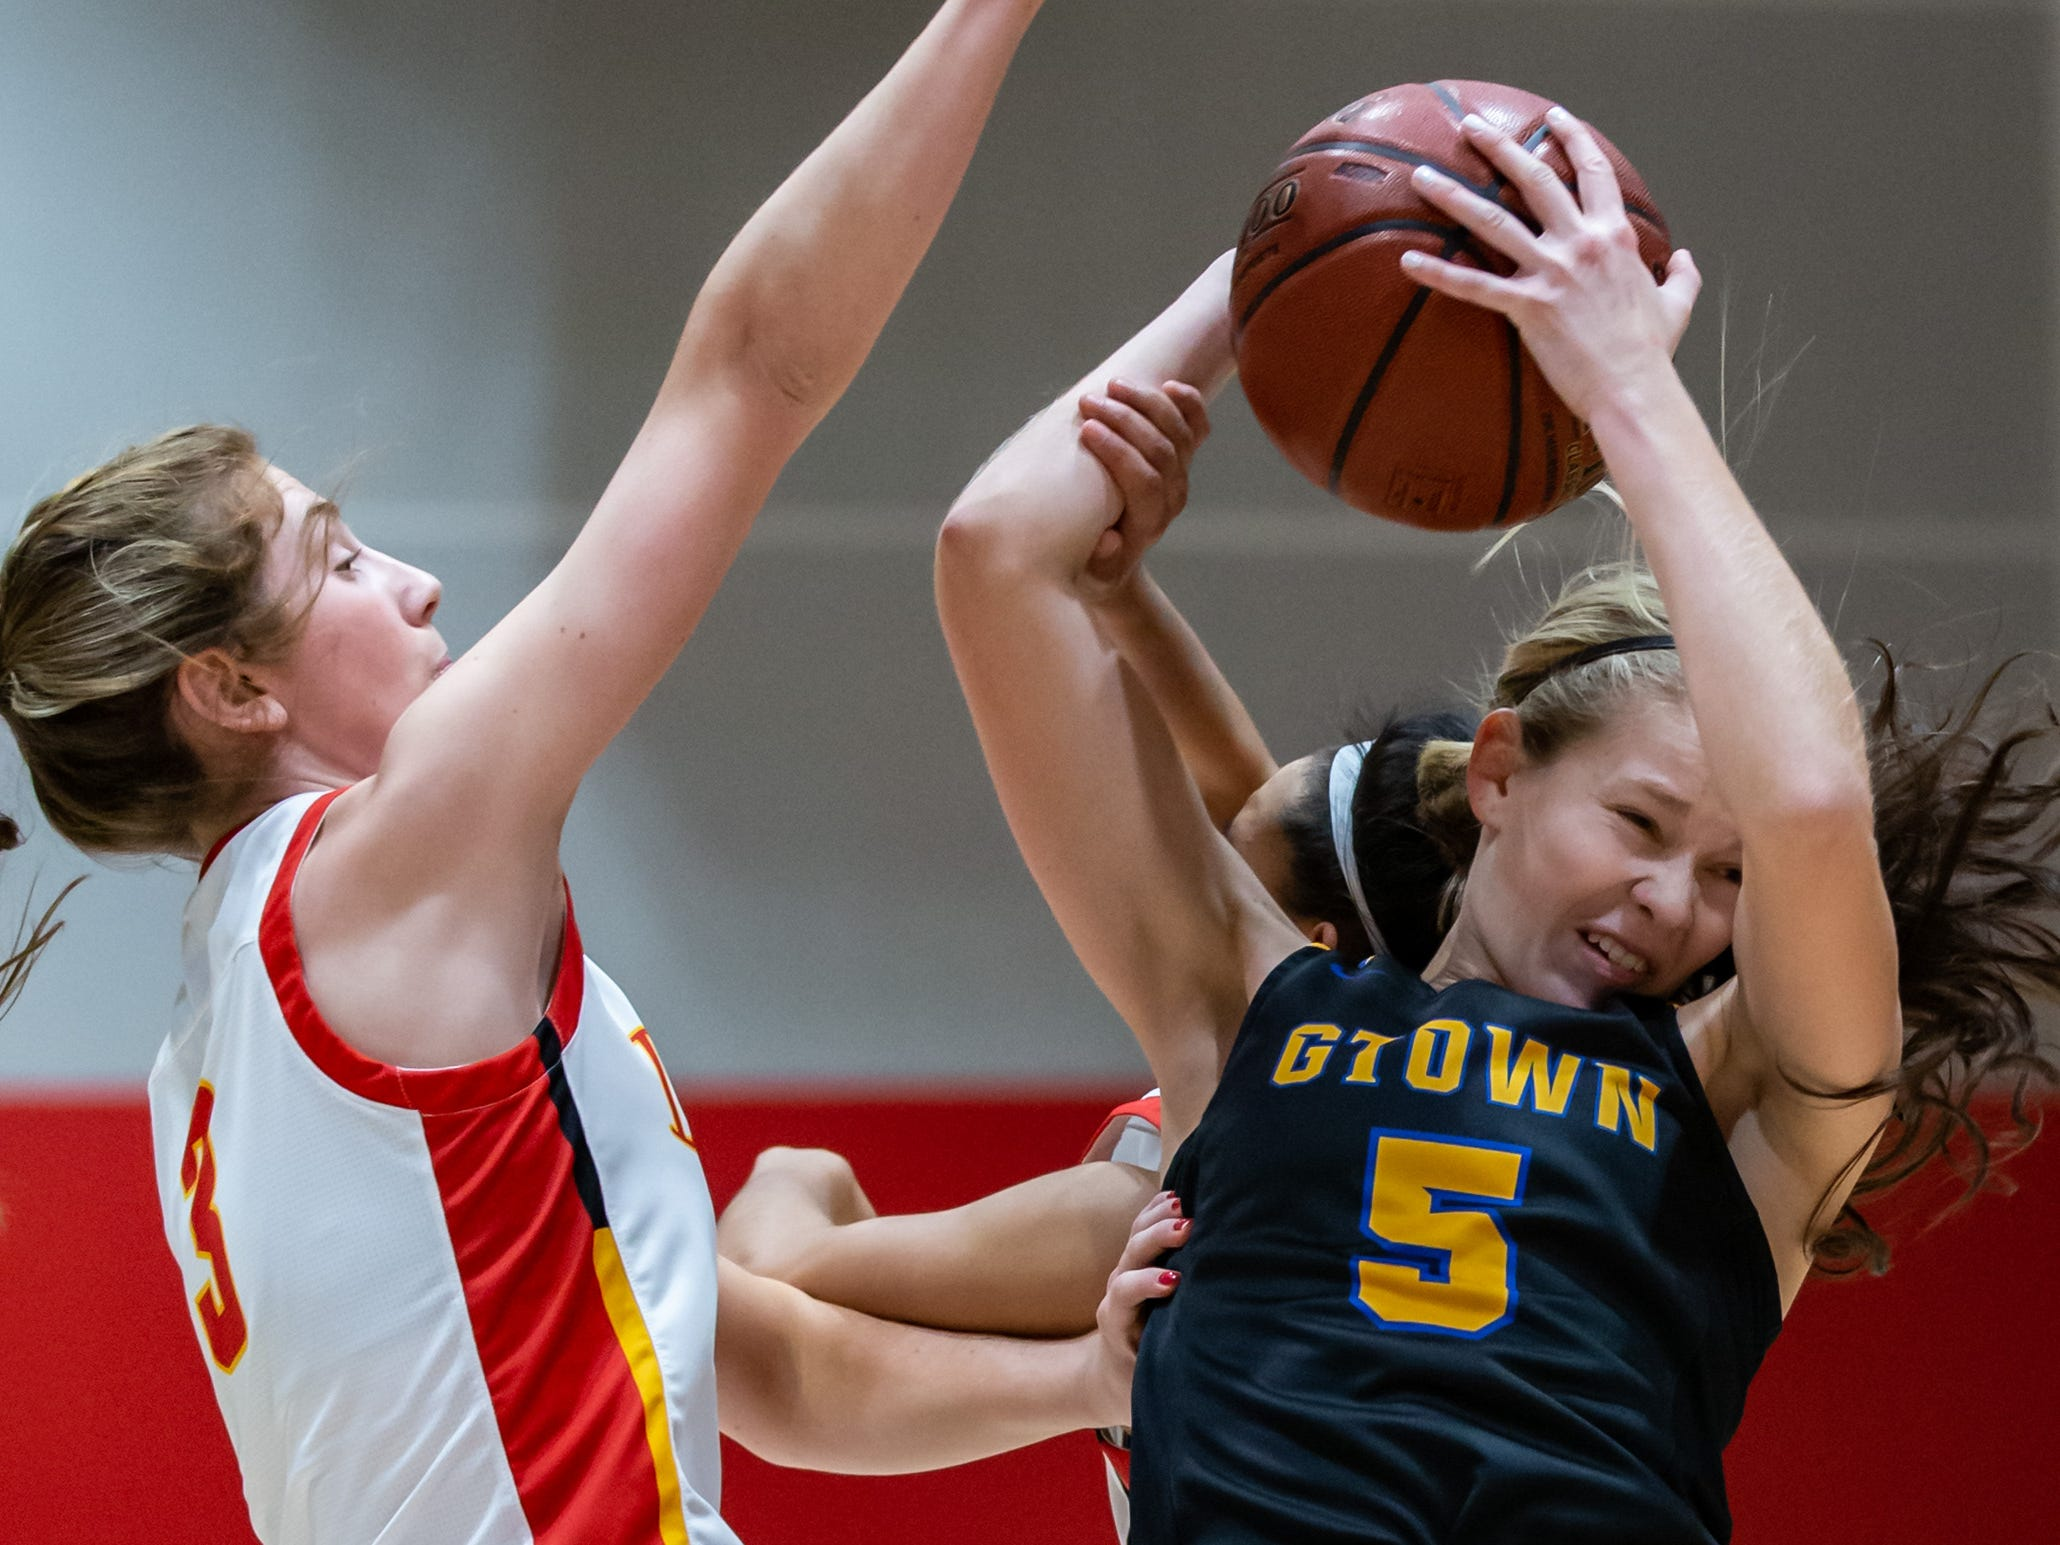 Germantown senior McKenna Klopfer (5) pulls down a rebound during the game at Divine Savior Holy Angels on Friday, Dec. 14, 2018.